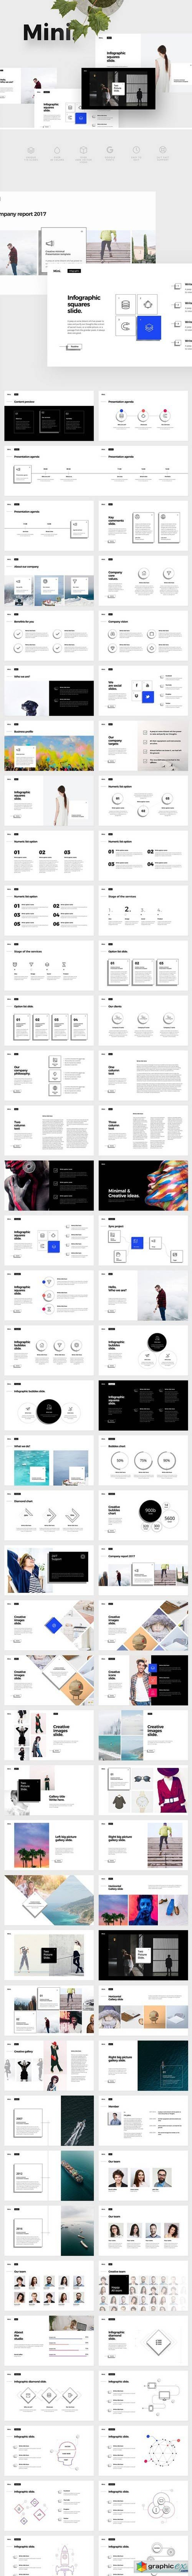 MINI Keynote Template